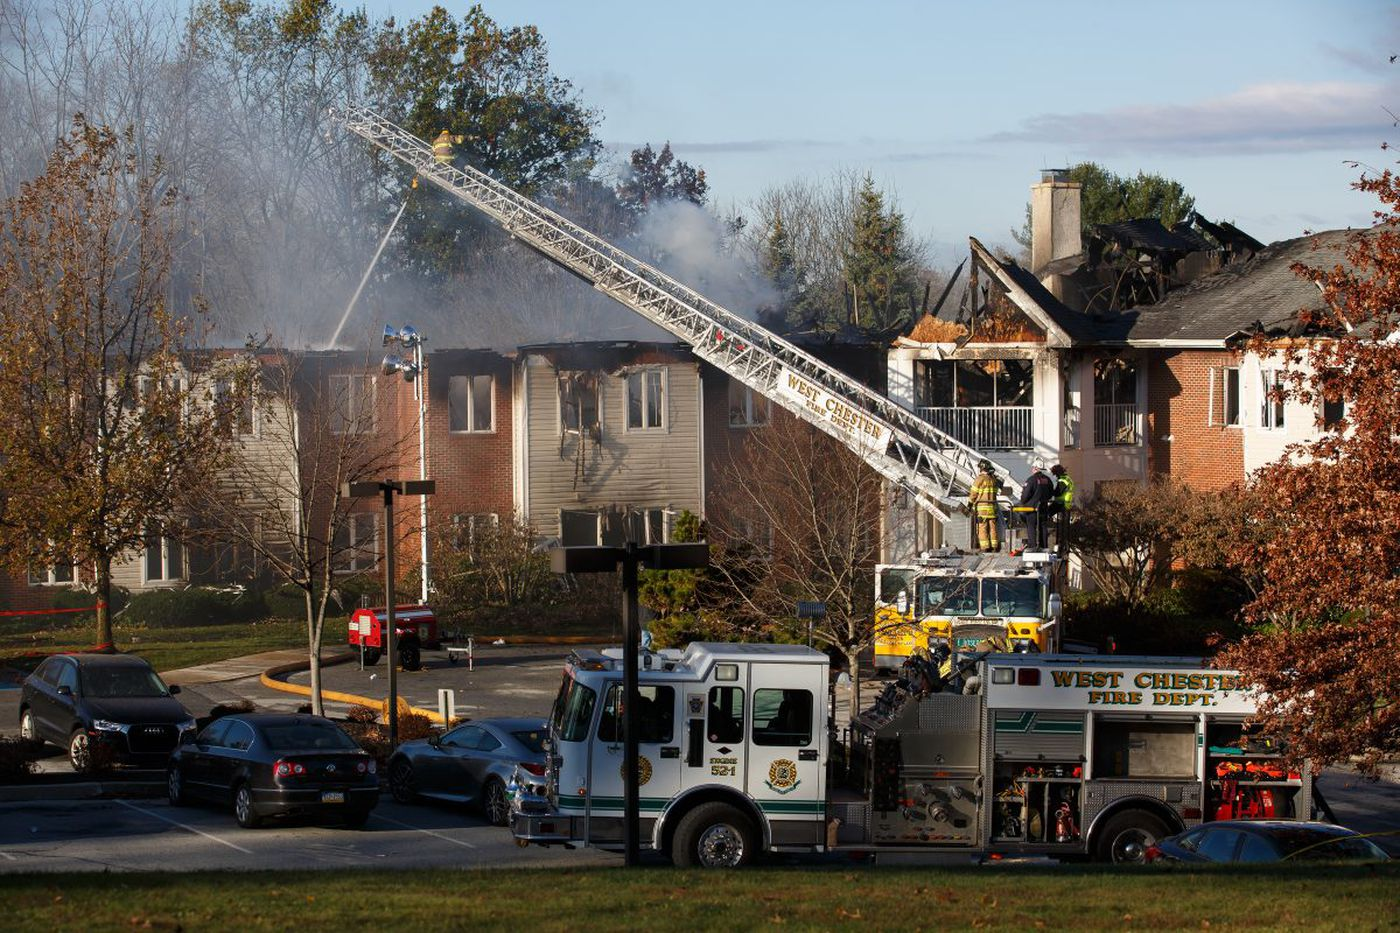 A day after West Chester nursing home fire, few answers